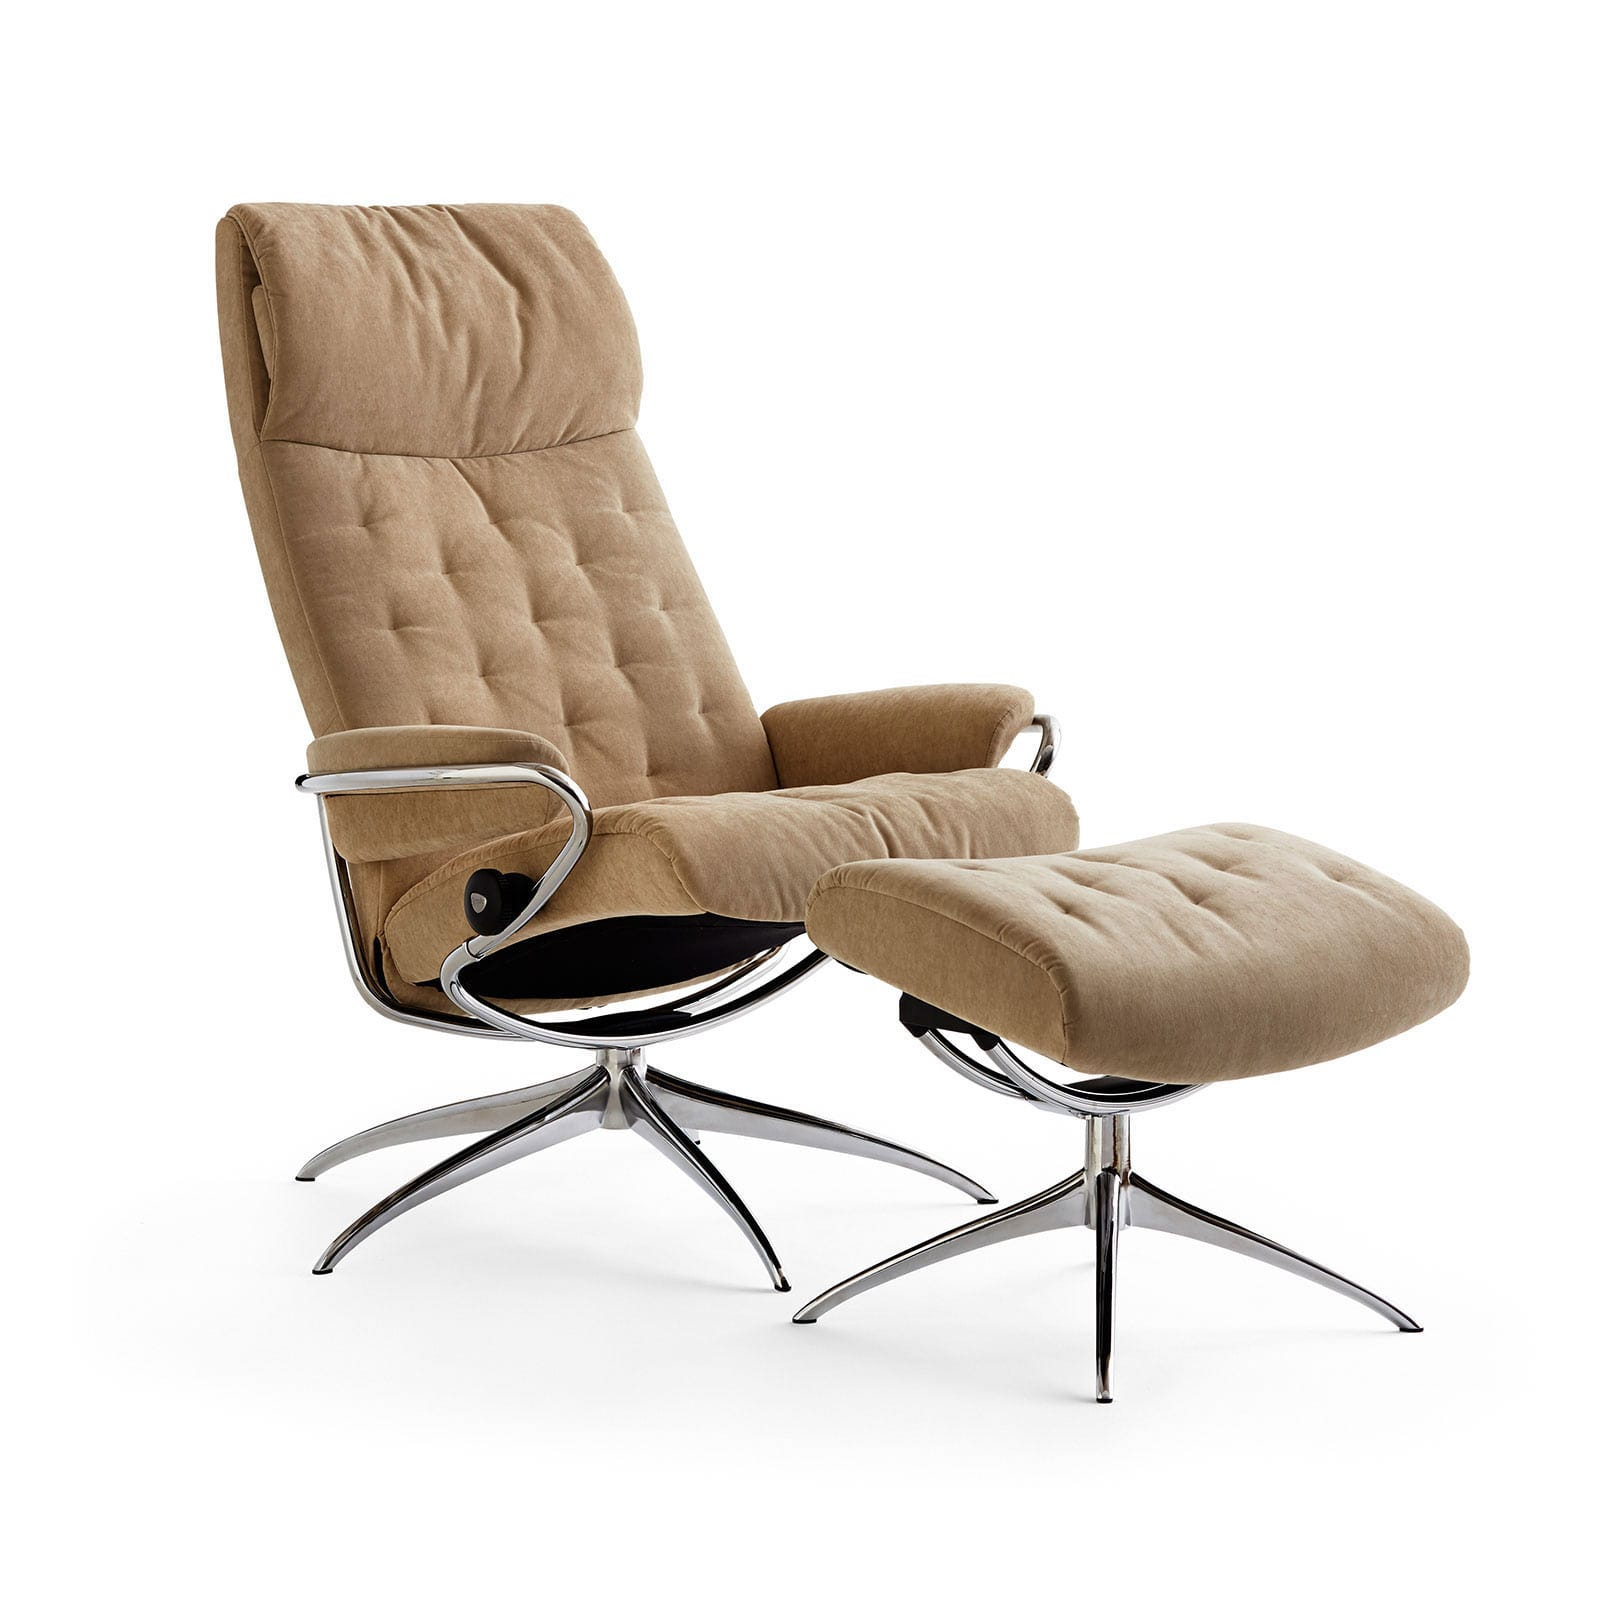 Sessel Stoff Mit Hocker Stressless Metro High Back Verona Camel Gestell Chrom Hocker